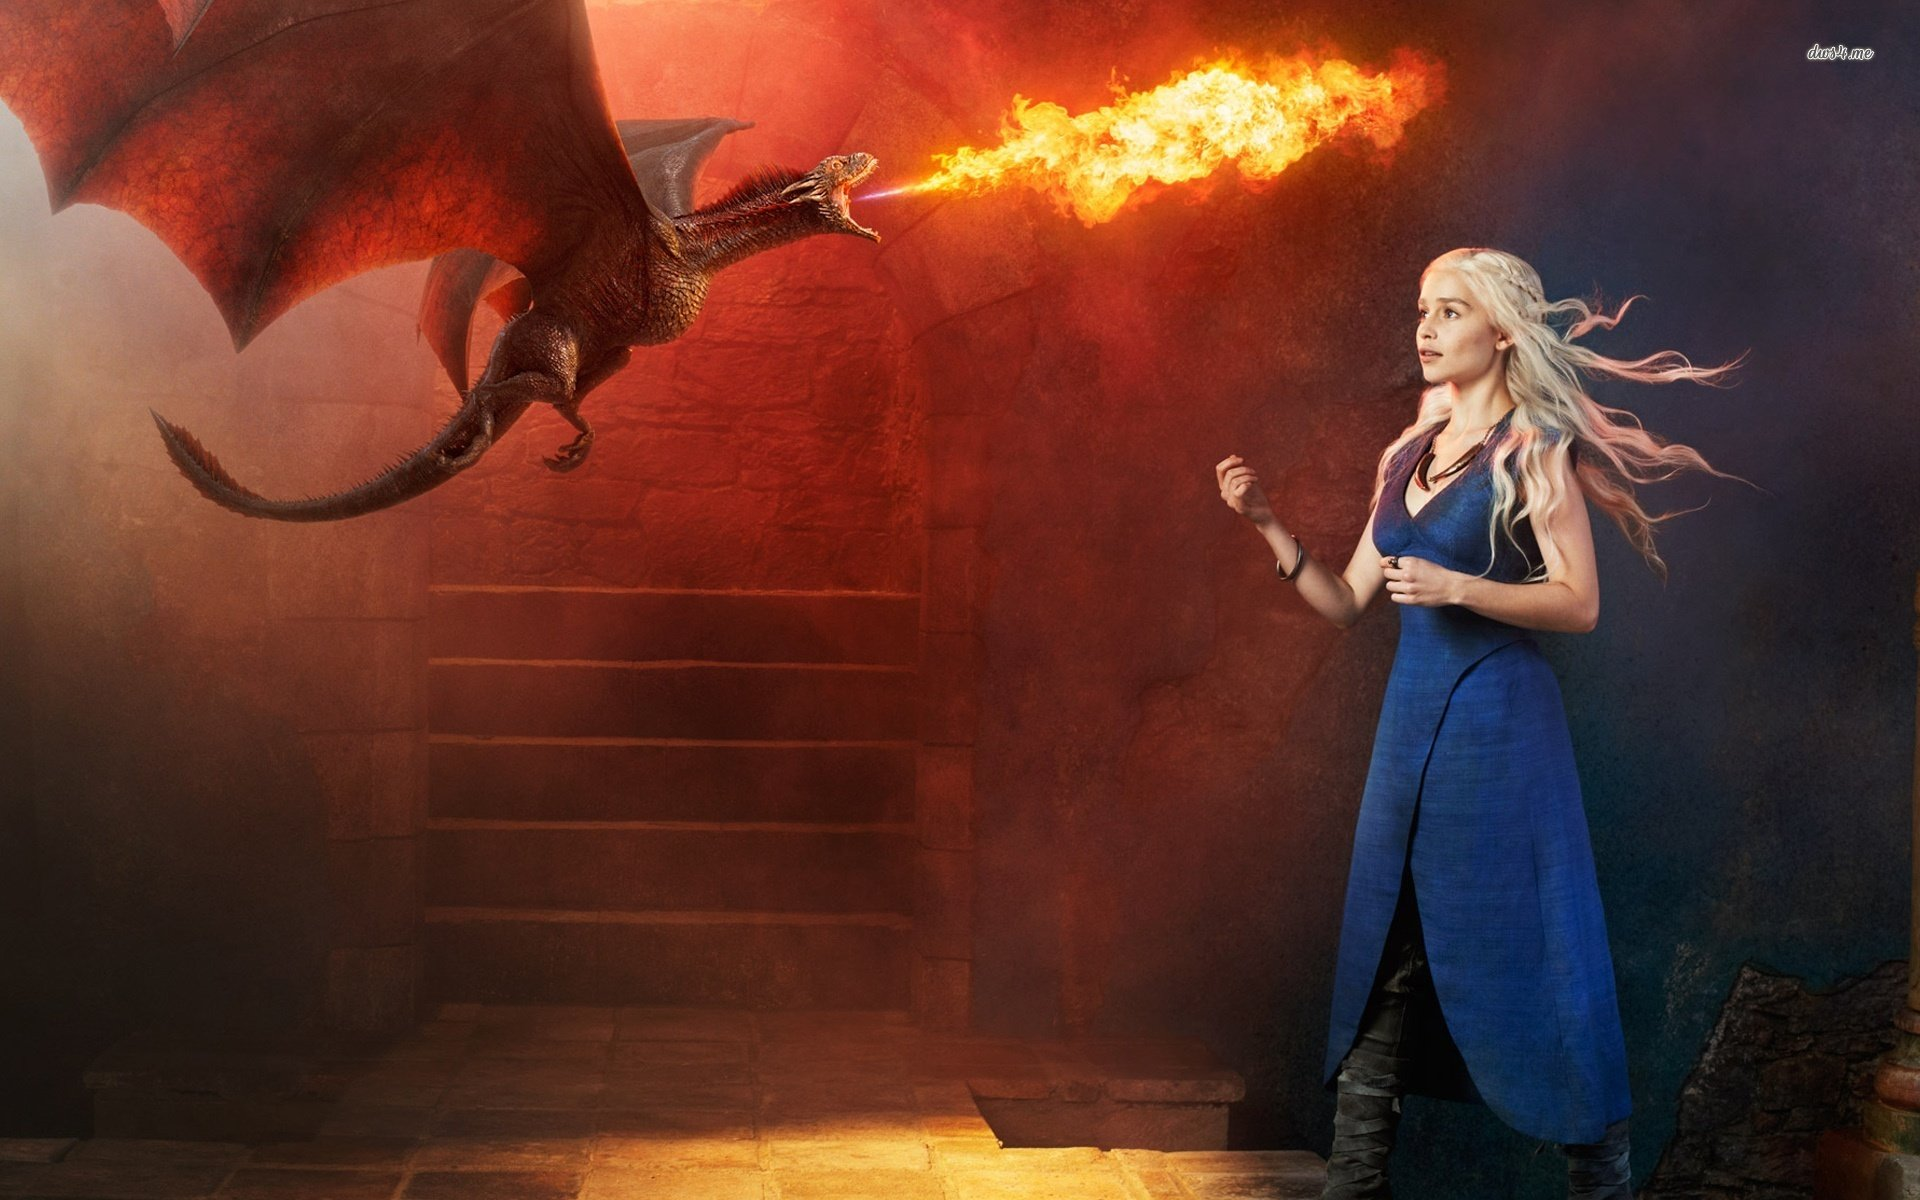 TV-daenerys-targaryen-game-of-thrones-dessin